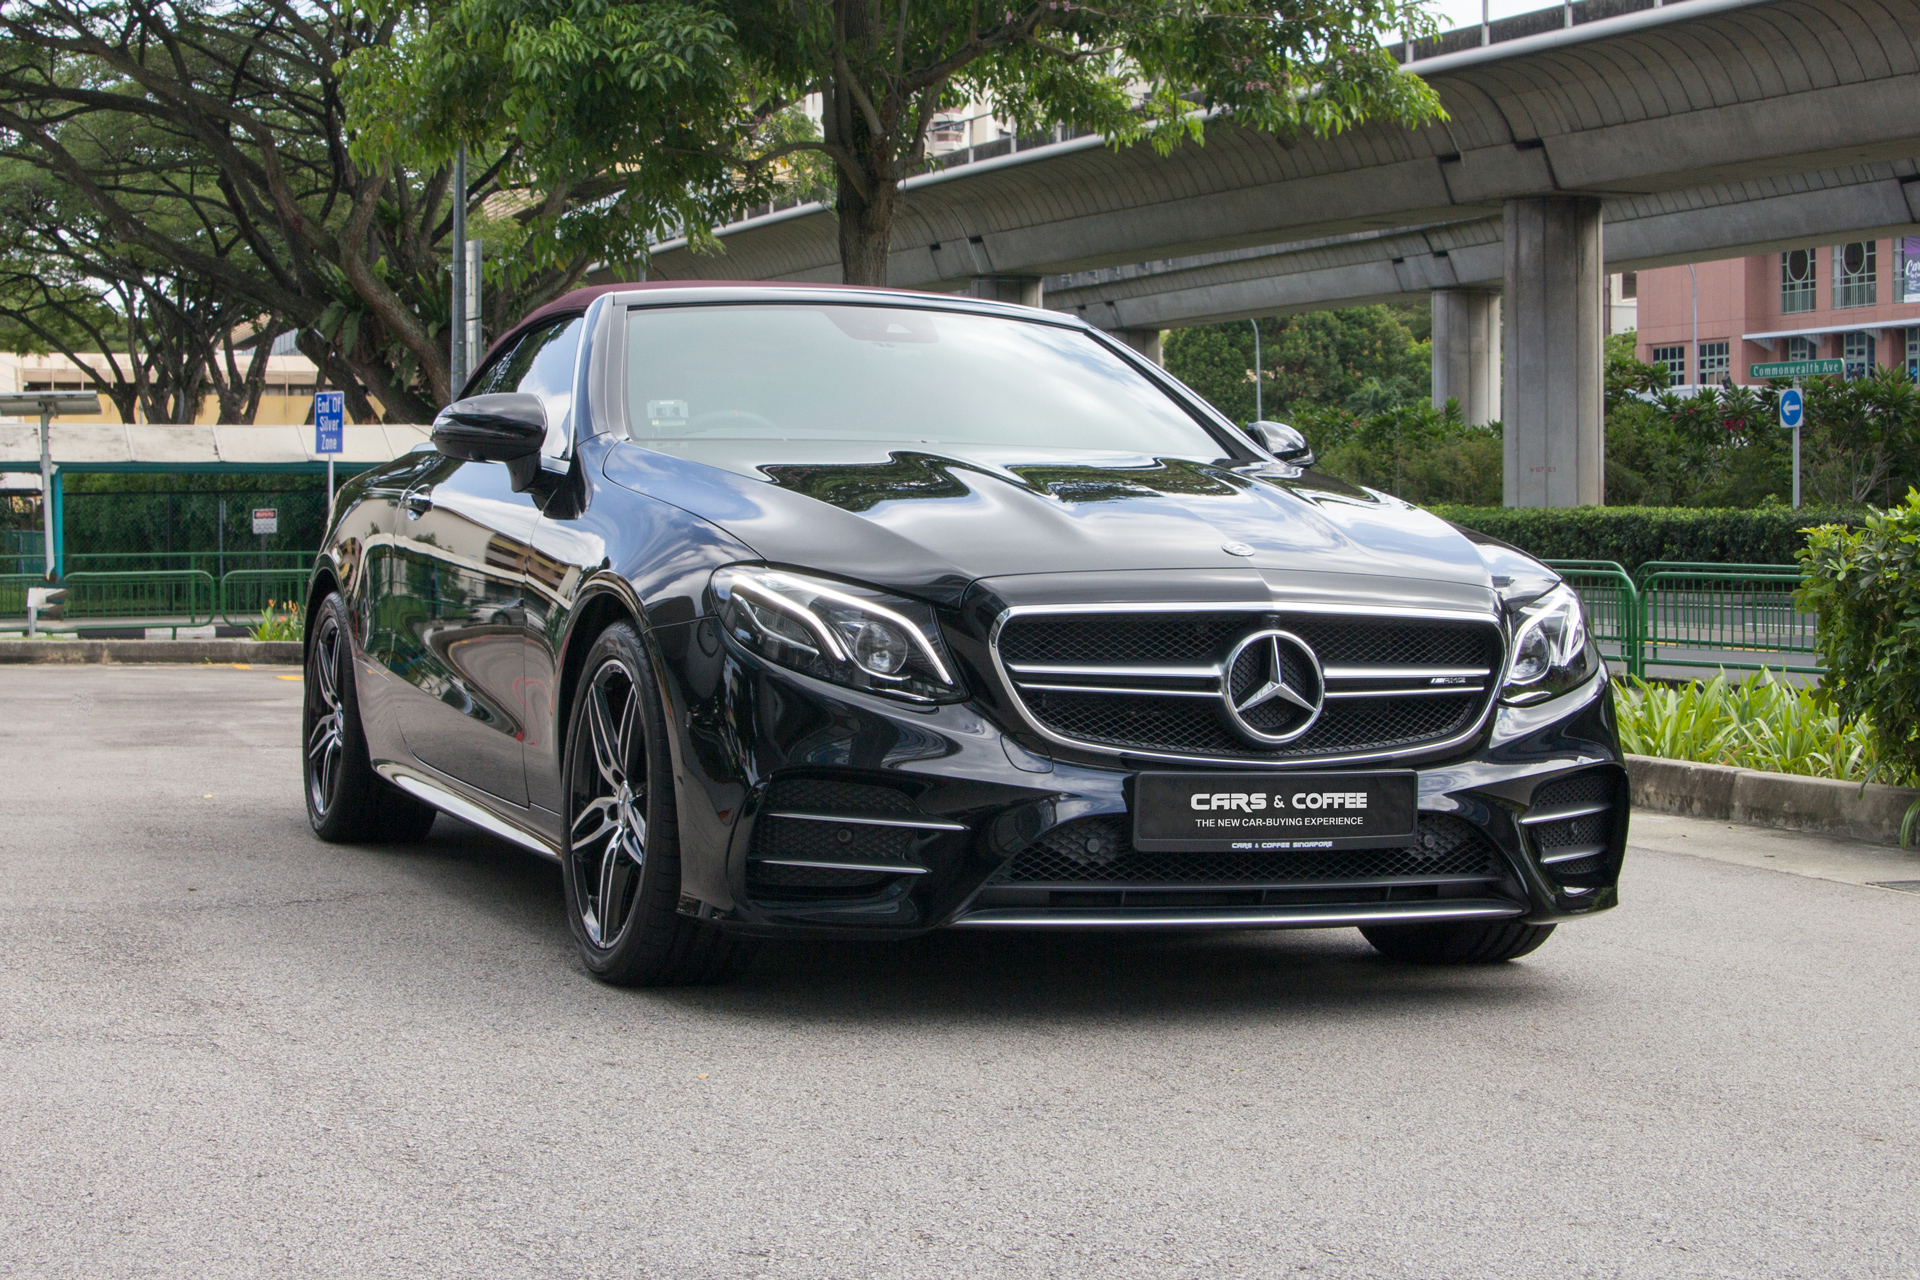 Certified Pre-Owned Mercedes-Benz E53 Cabriolet AMG 4MATIC   Cars and Coffee Singapore